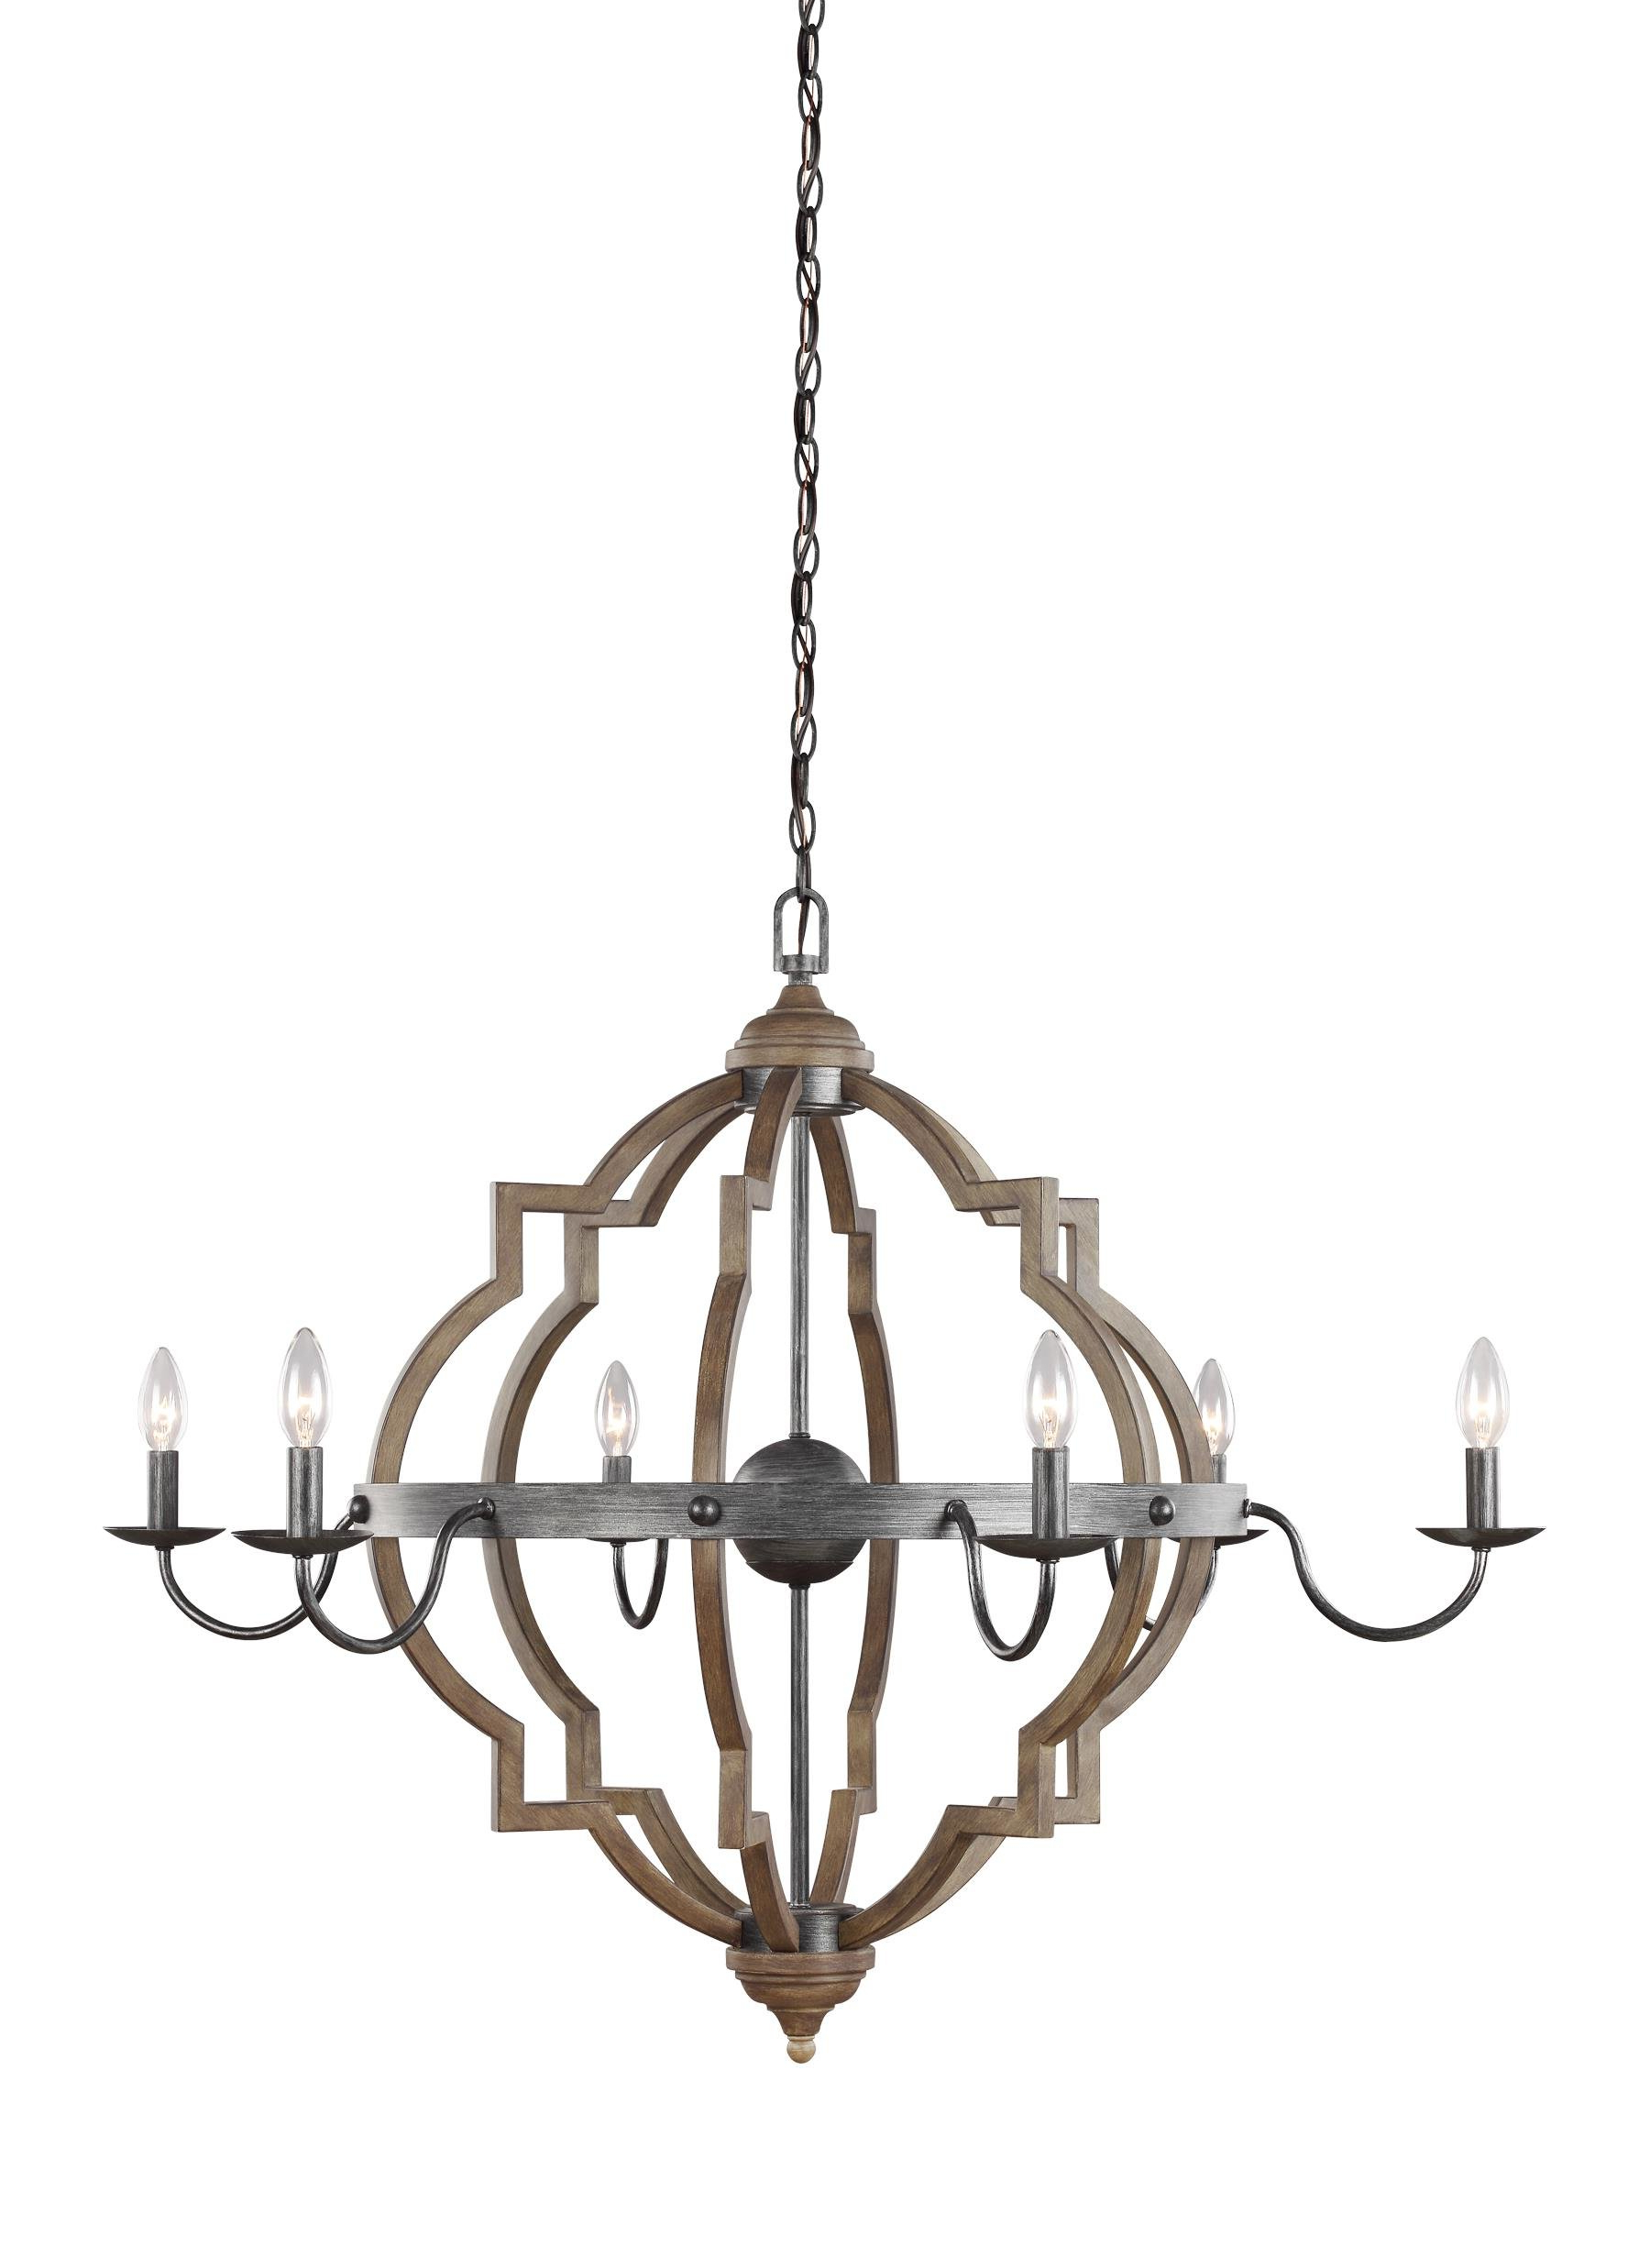 Donna 6 Light Candle Style Chandelier For Recent Bennington 6 Light Candle Style Chandeliers (View 8 of 20)